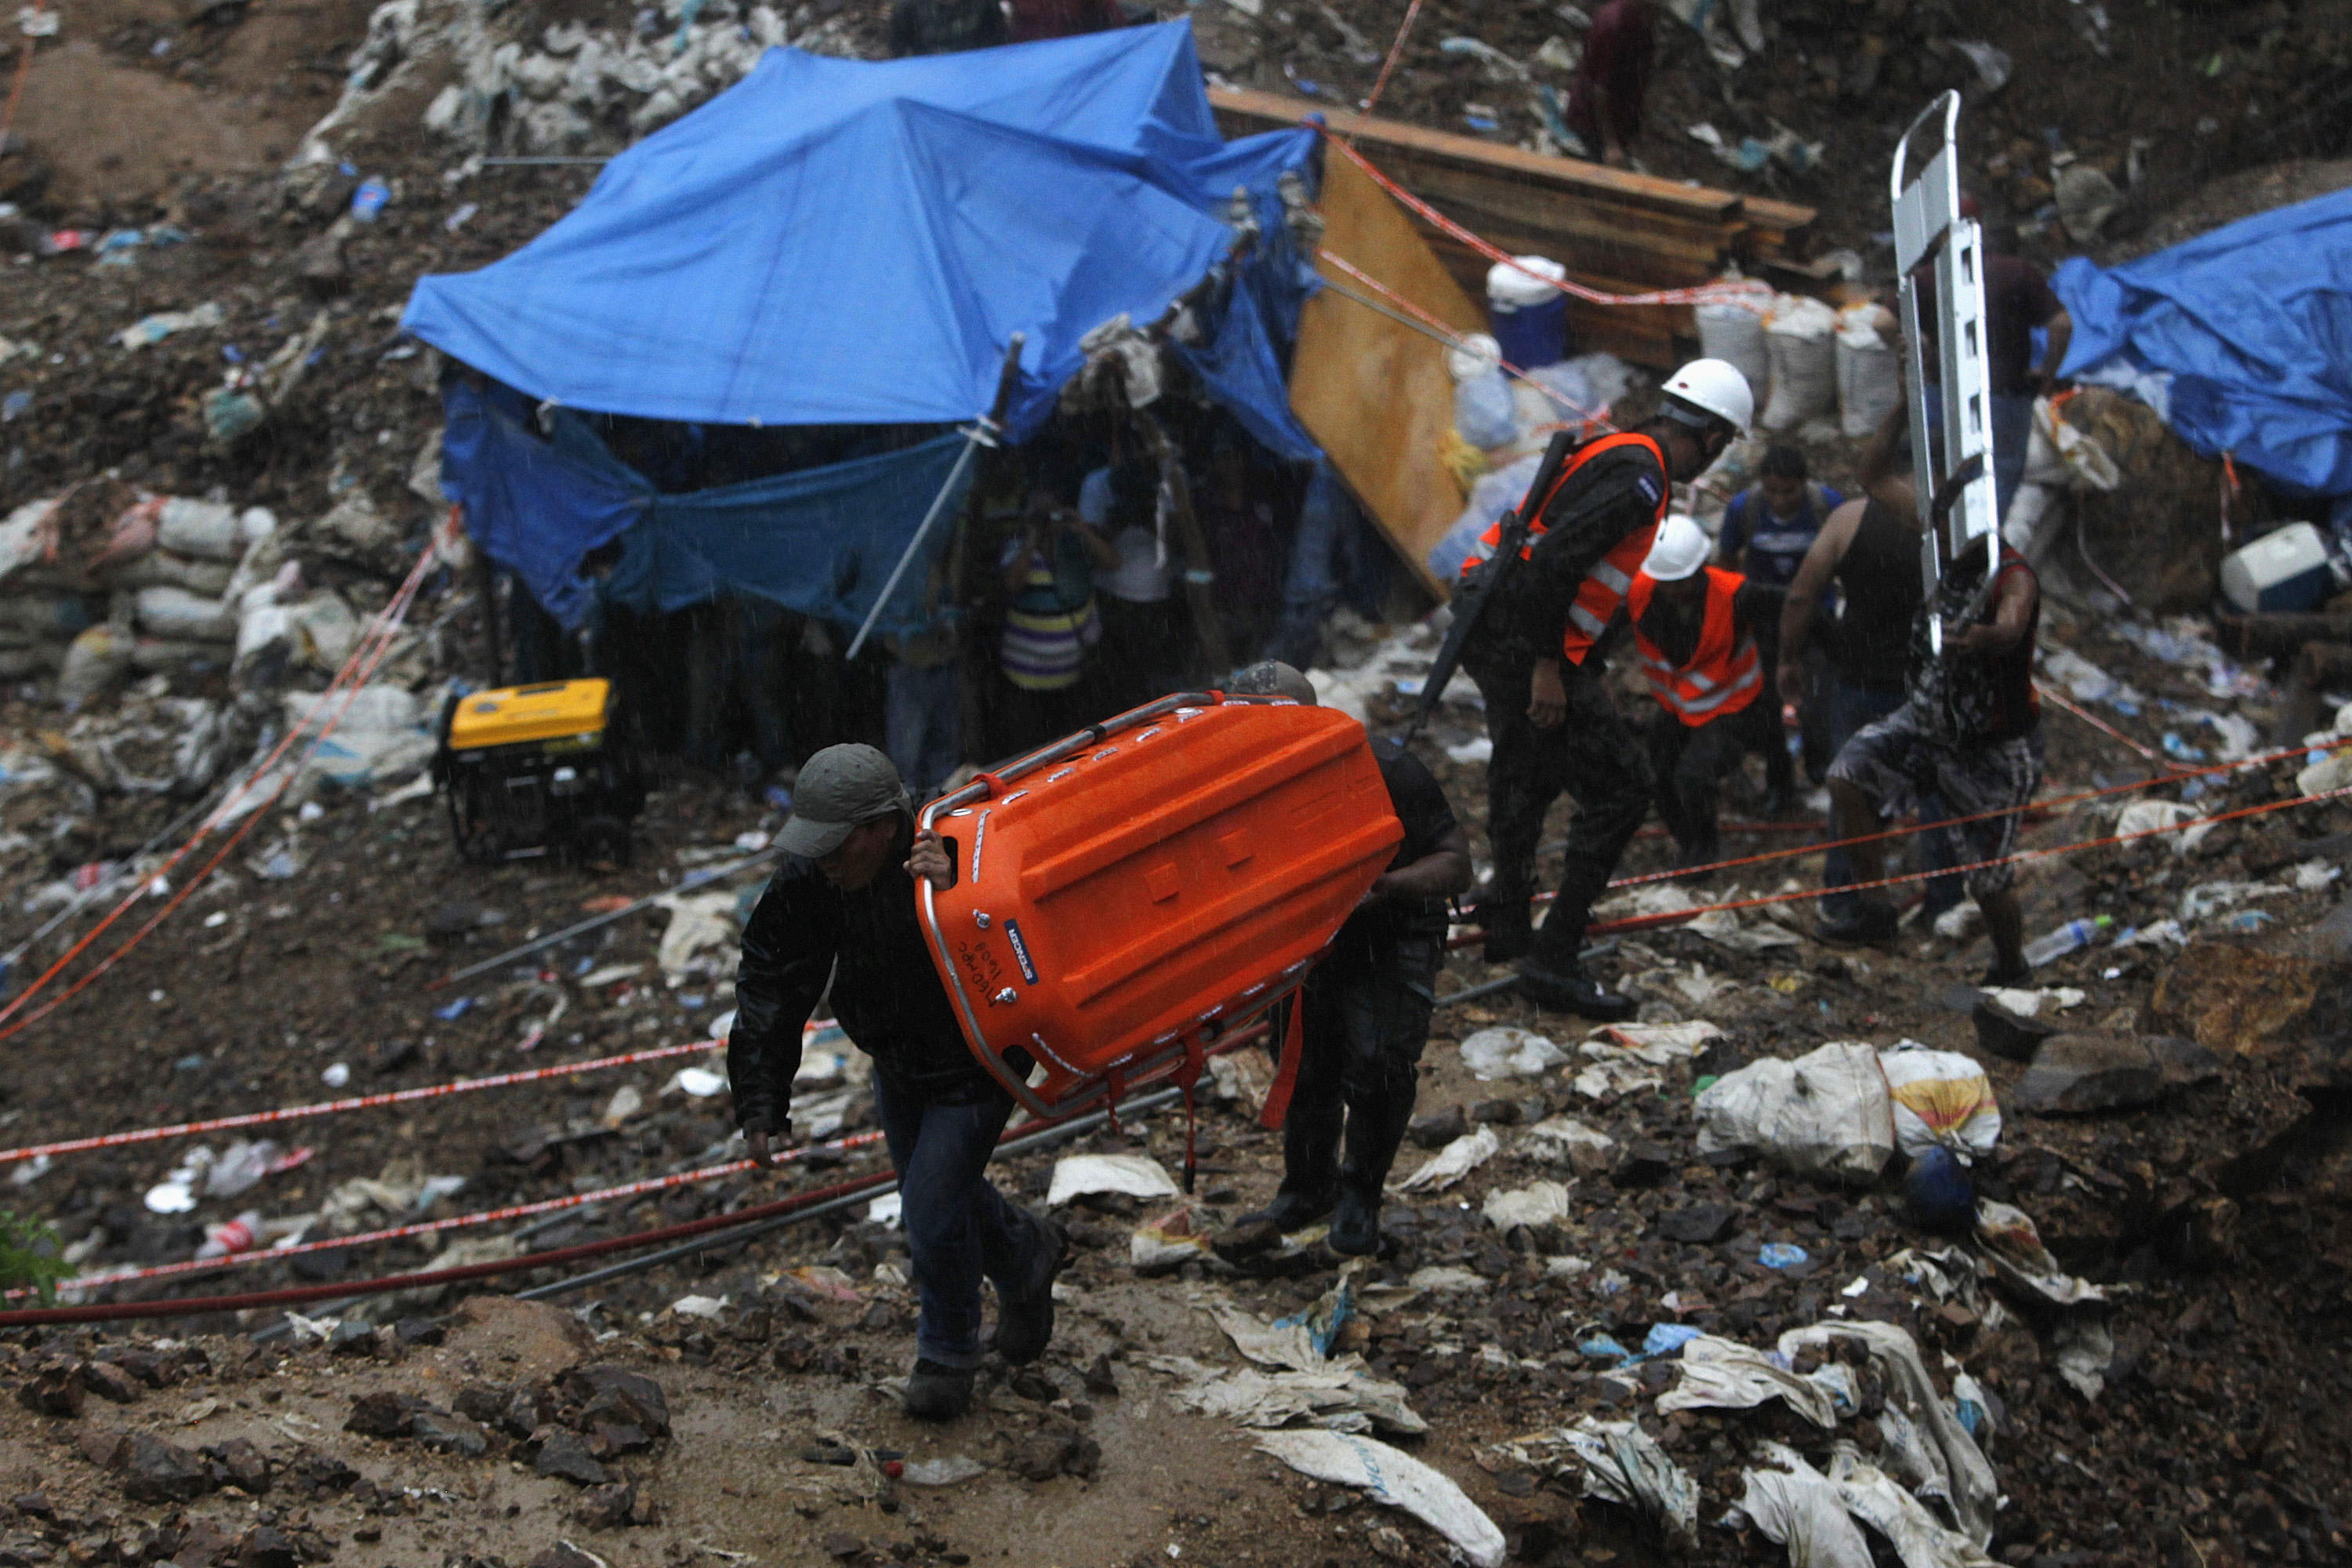 Miners carry stretchers as other take cover from rain in a makeshift tent at the site of a landslide at a gold mine in San Juan Arriba